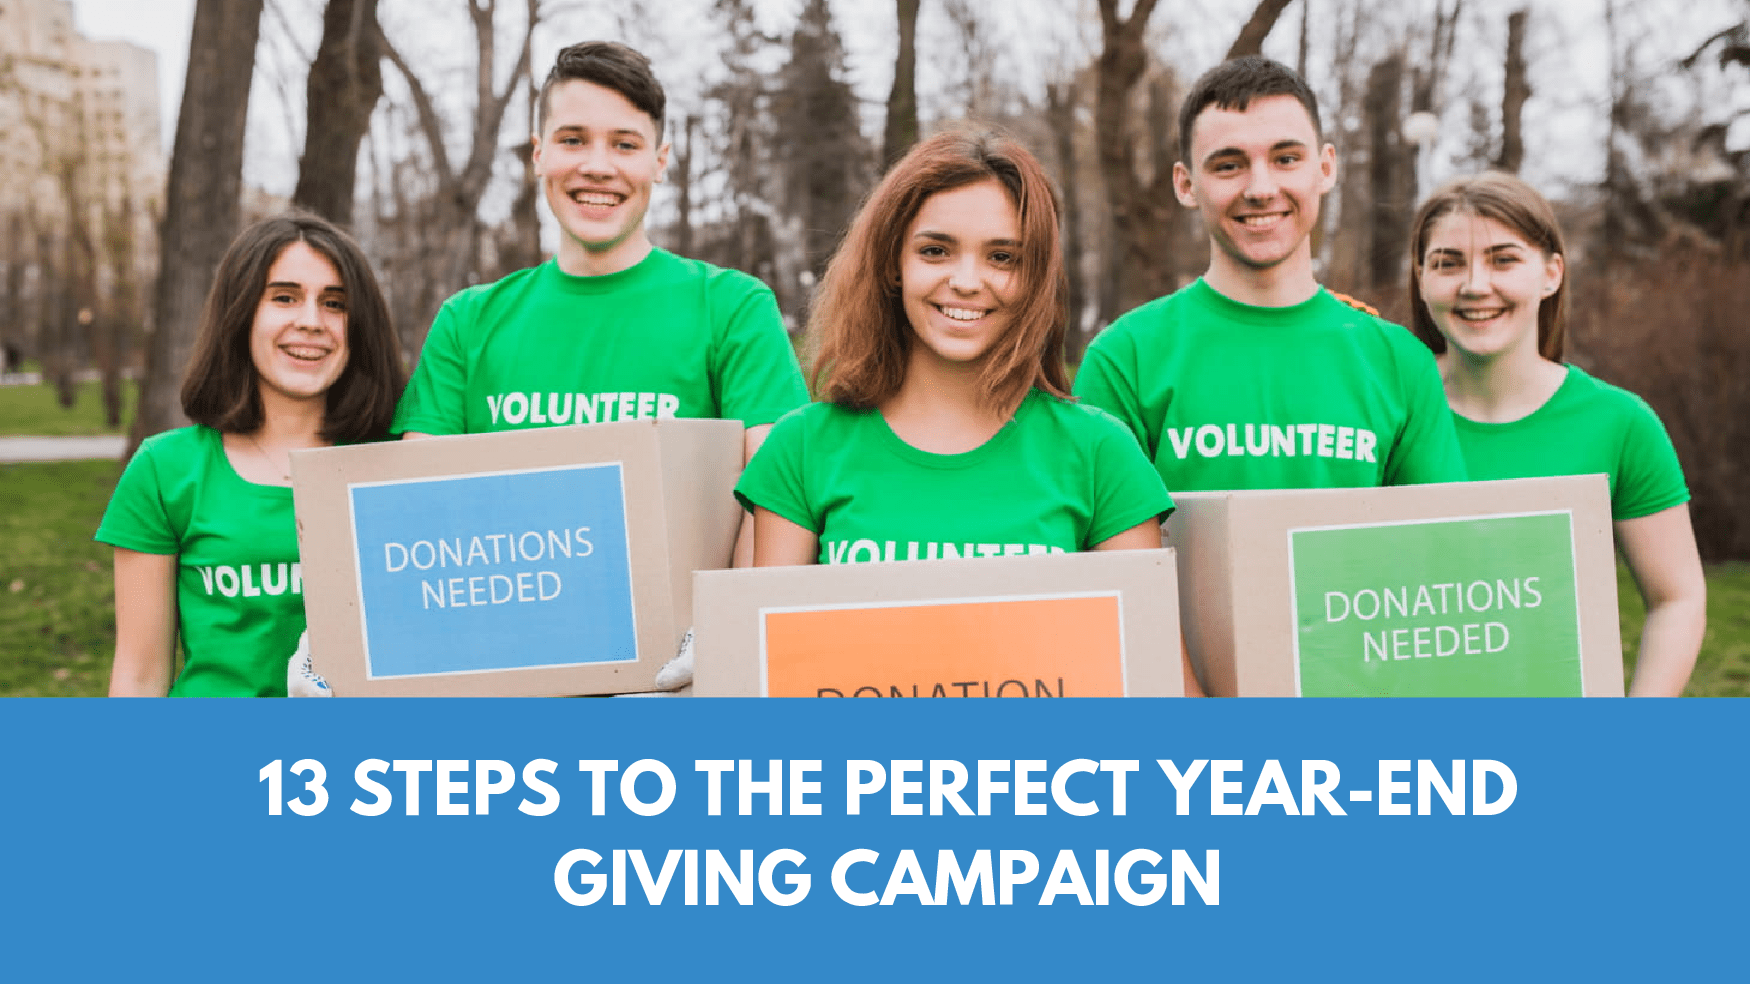 13 Steps to the Perfect Year-End Giving Campaign in 2021